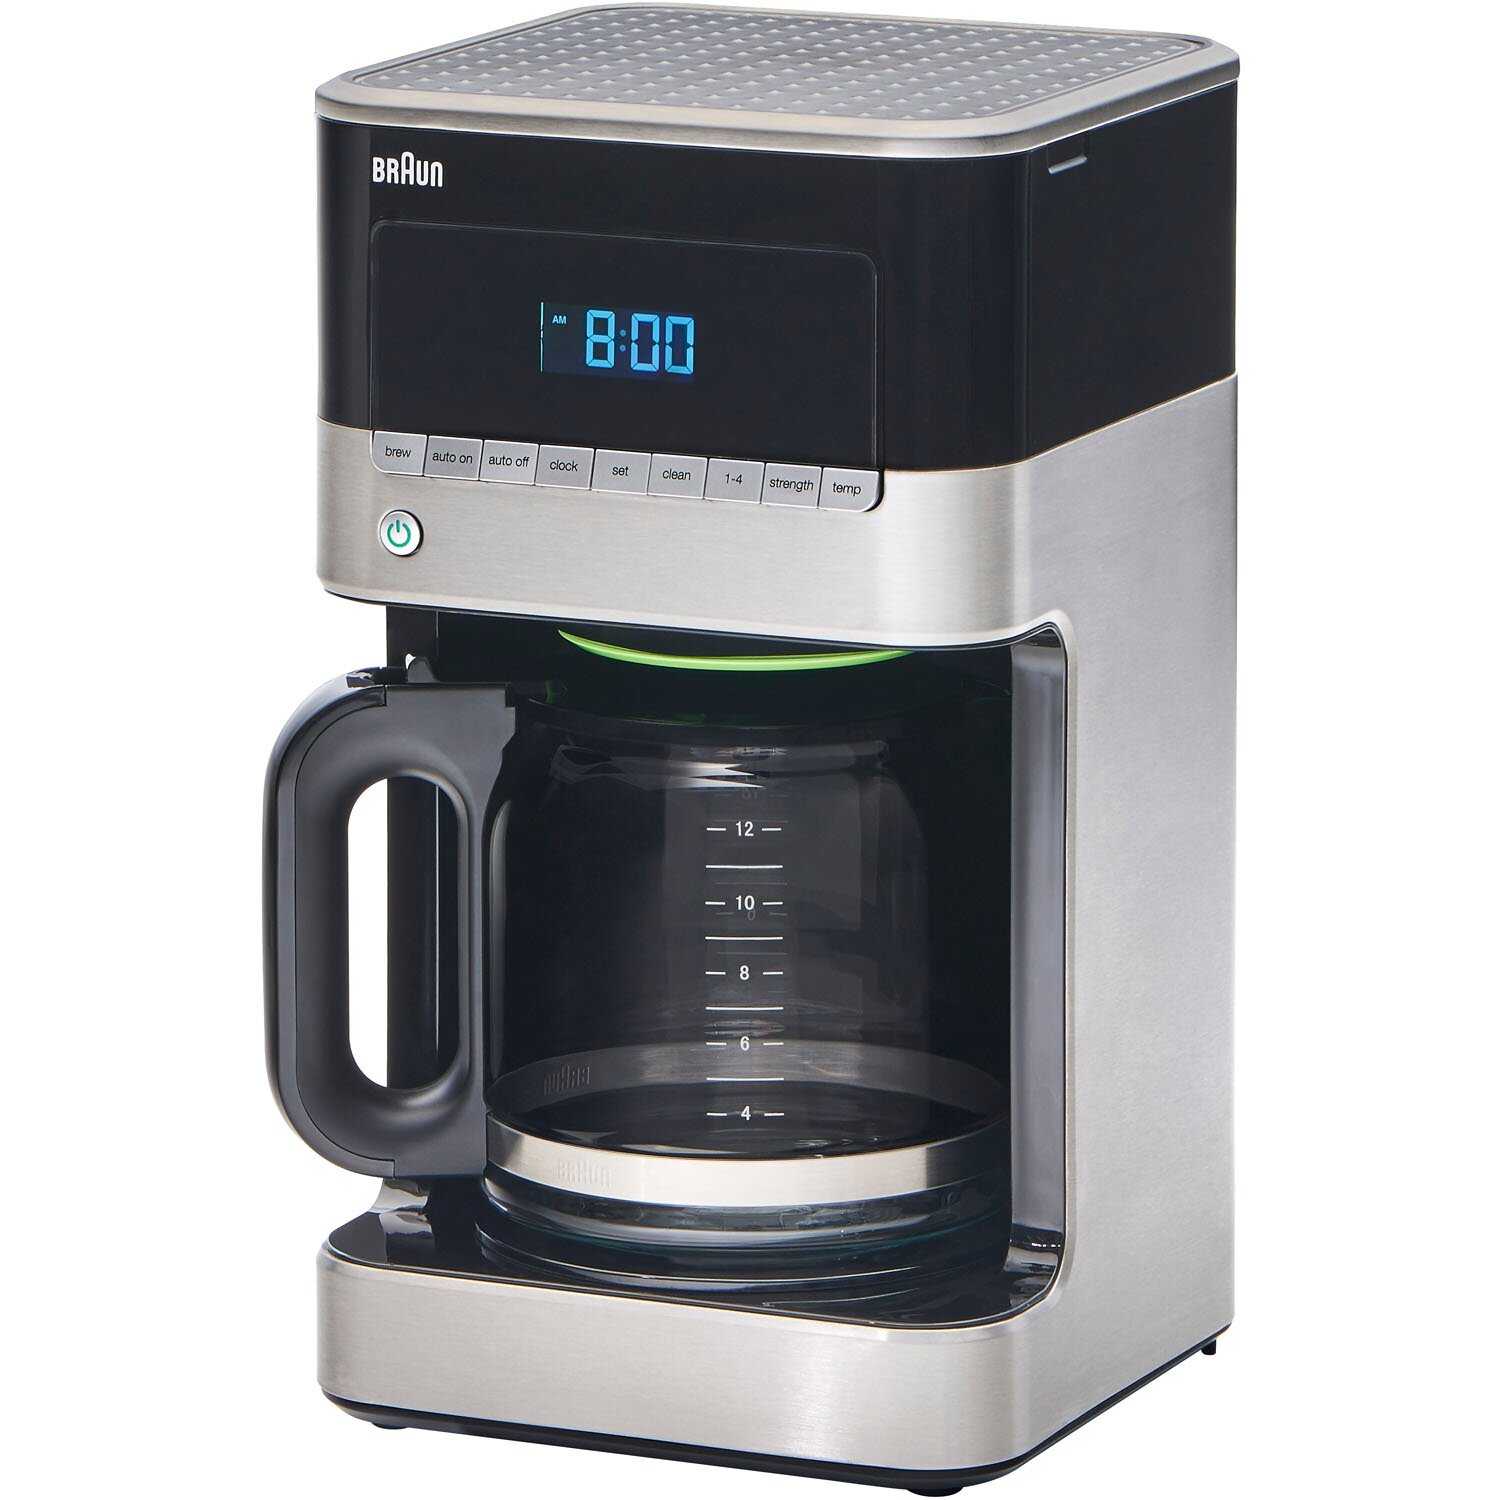 Braun Drip Coffee Maker : Braun BrewSense 12 Cup Drip Coffee Maker & Reviews Wayfair